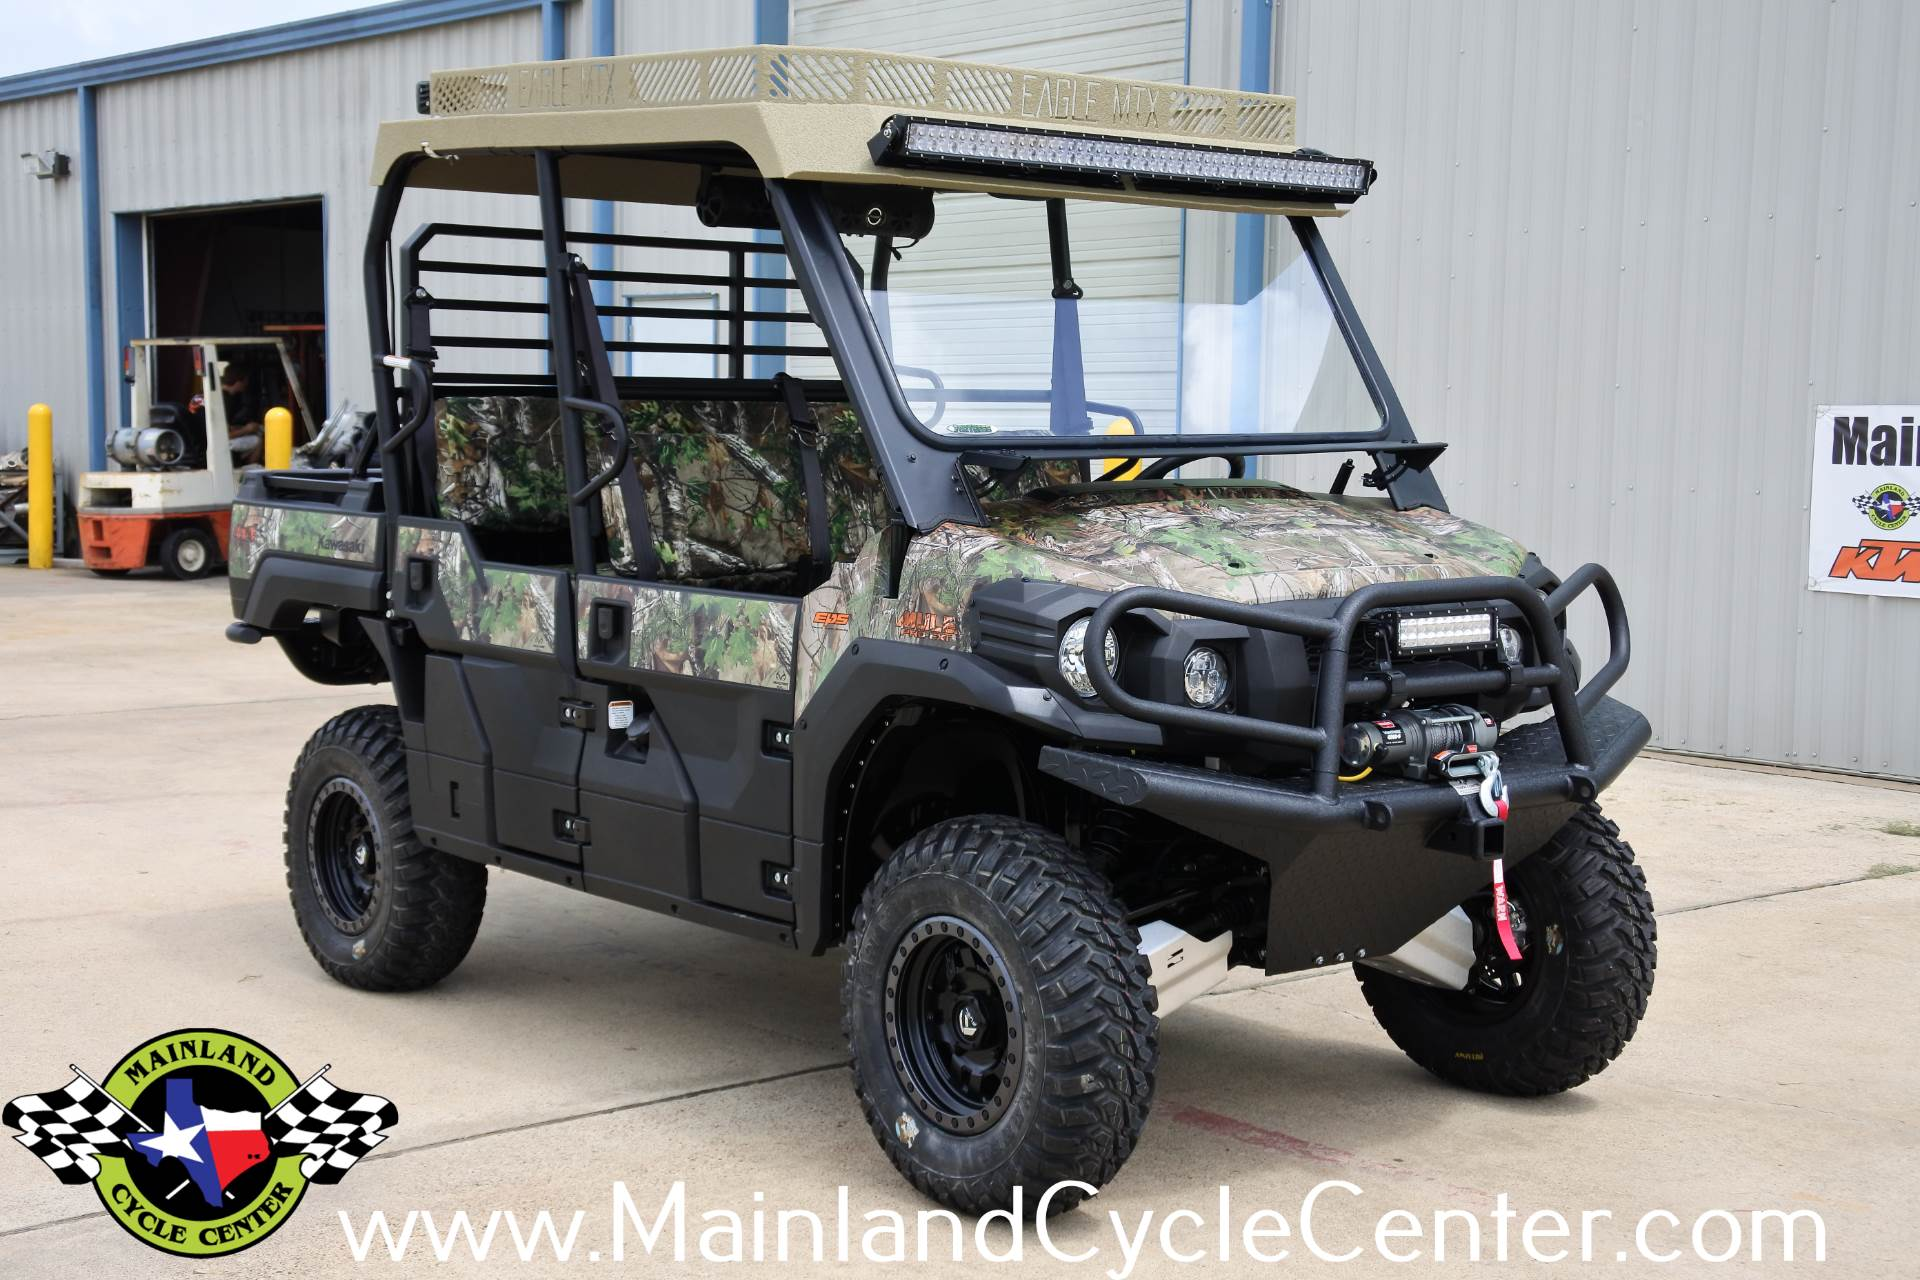 2017 Kawasaki Mule PRO-FXT EPS Camo in La Marque, Texas - Photo 3